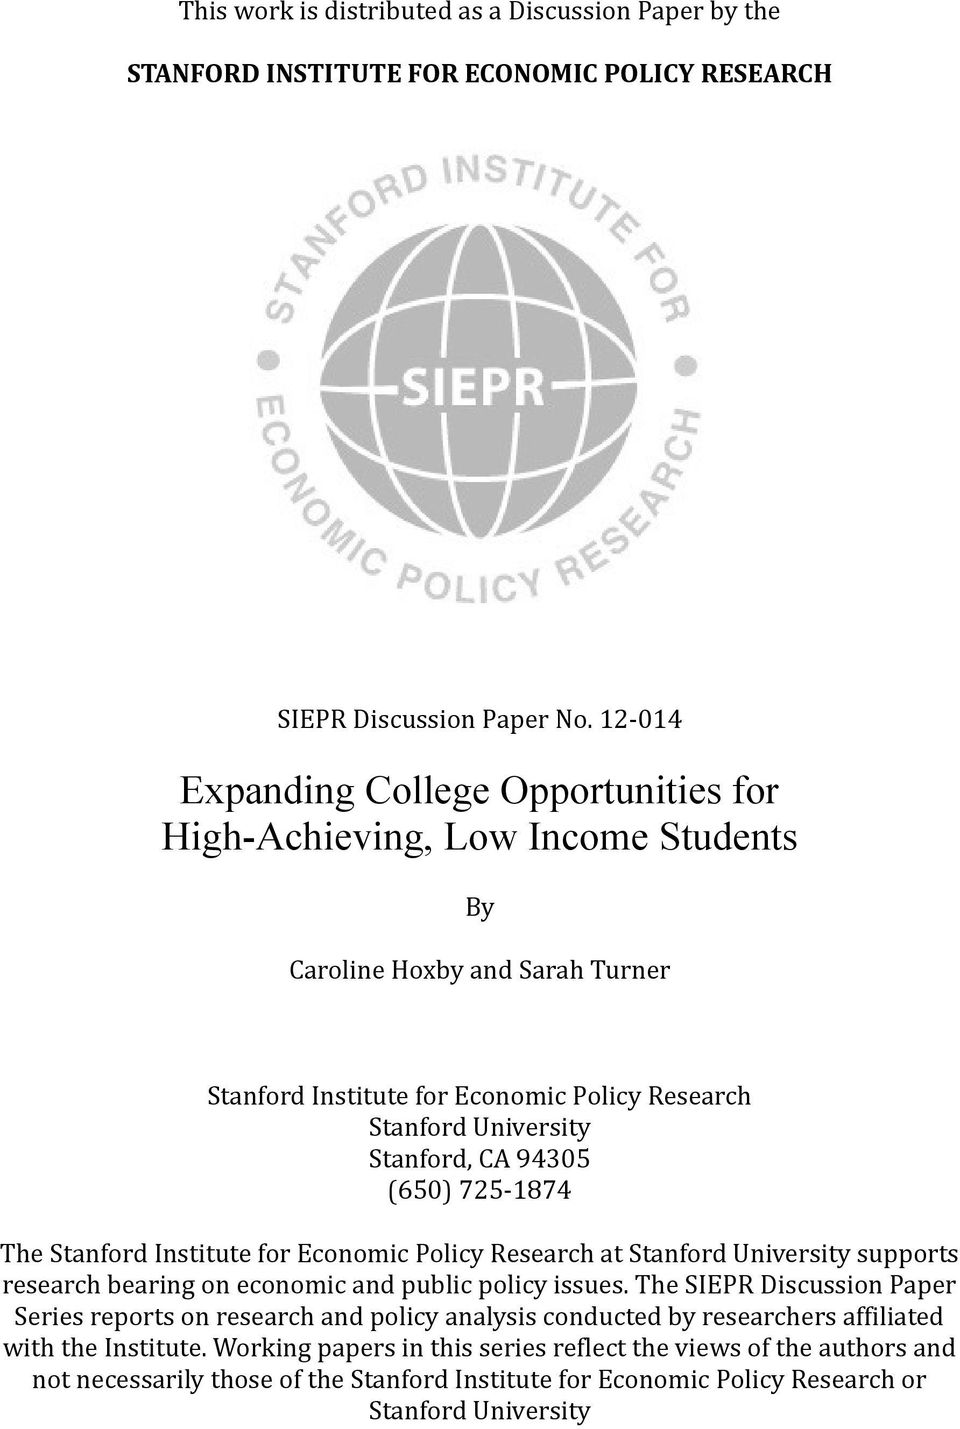 94305 (650) 725-1874 The Stanford Institute for Economic Policy Research at Stanford University supports research bearing on economic and public policy issues.